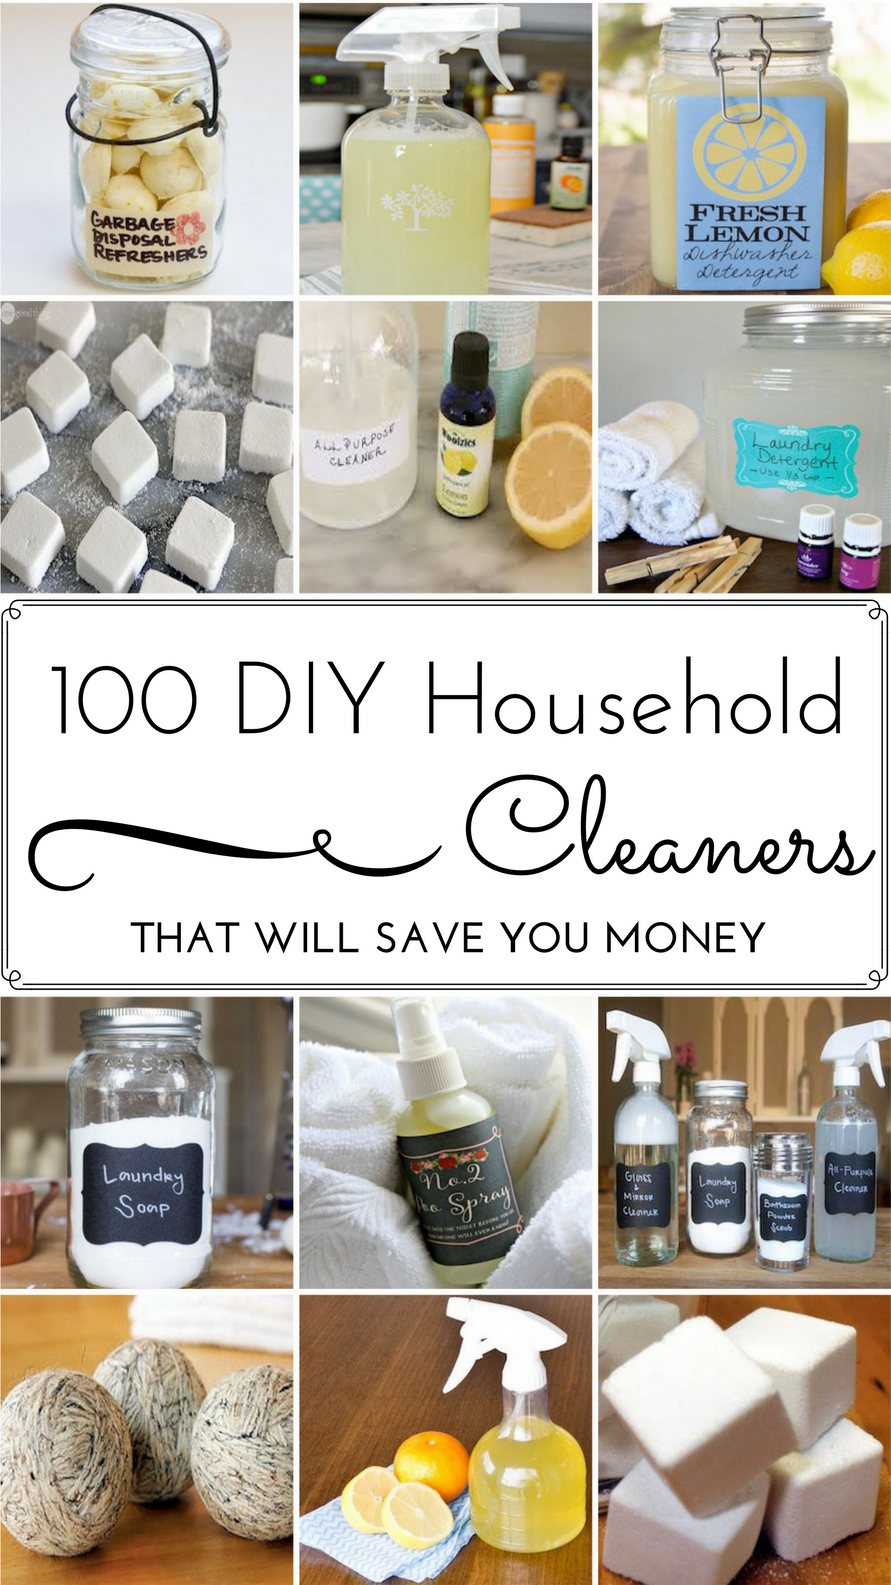 100 DIY Household Cleaner Recipes That Will Save You Money -   17 diy projects To Make Money baking soda ideas